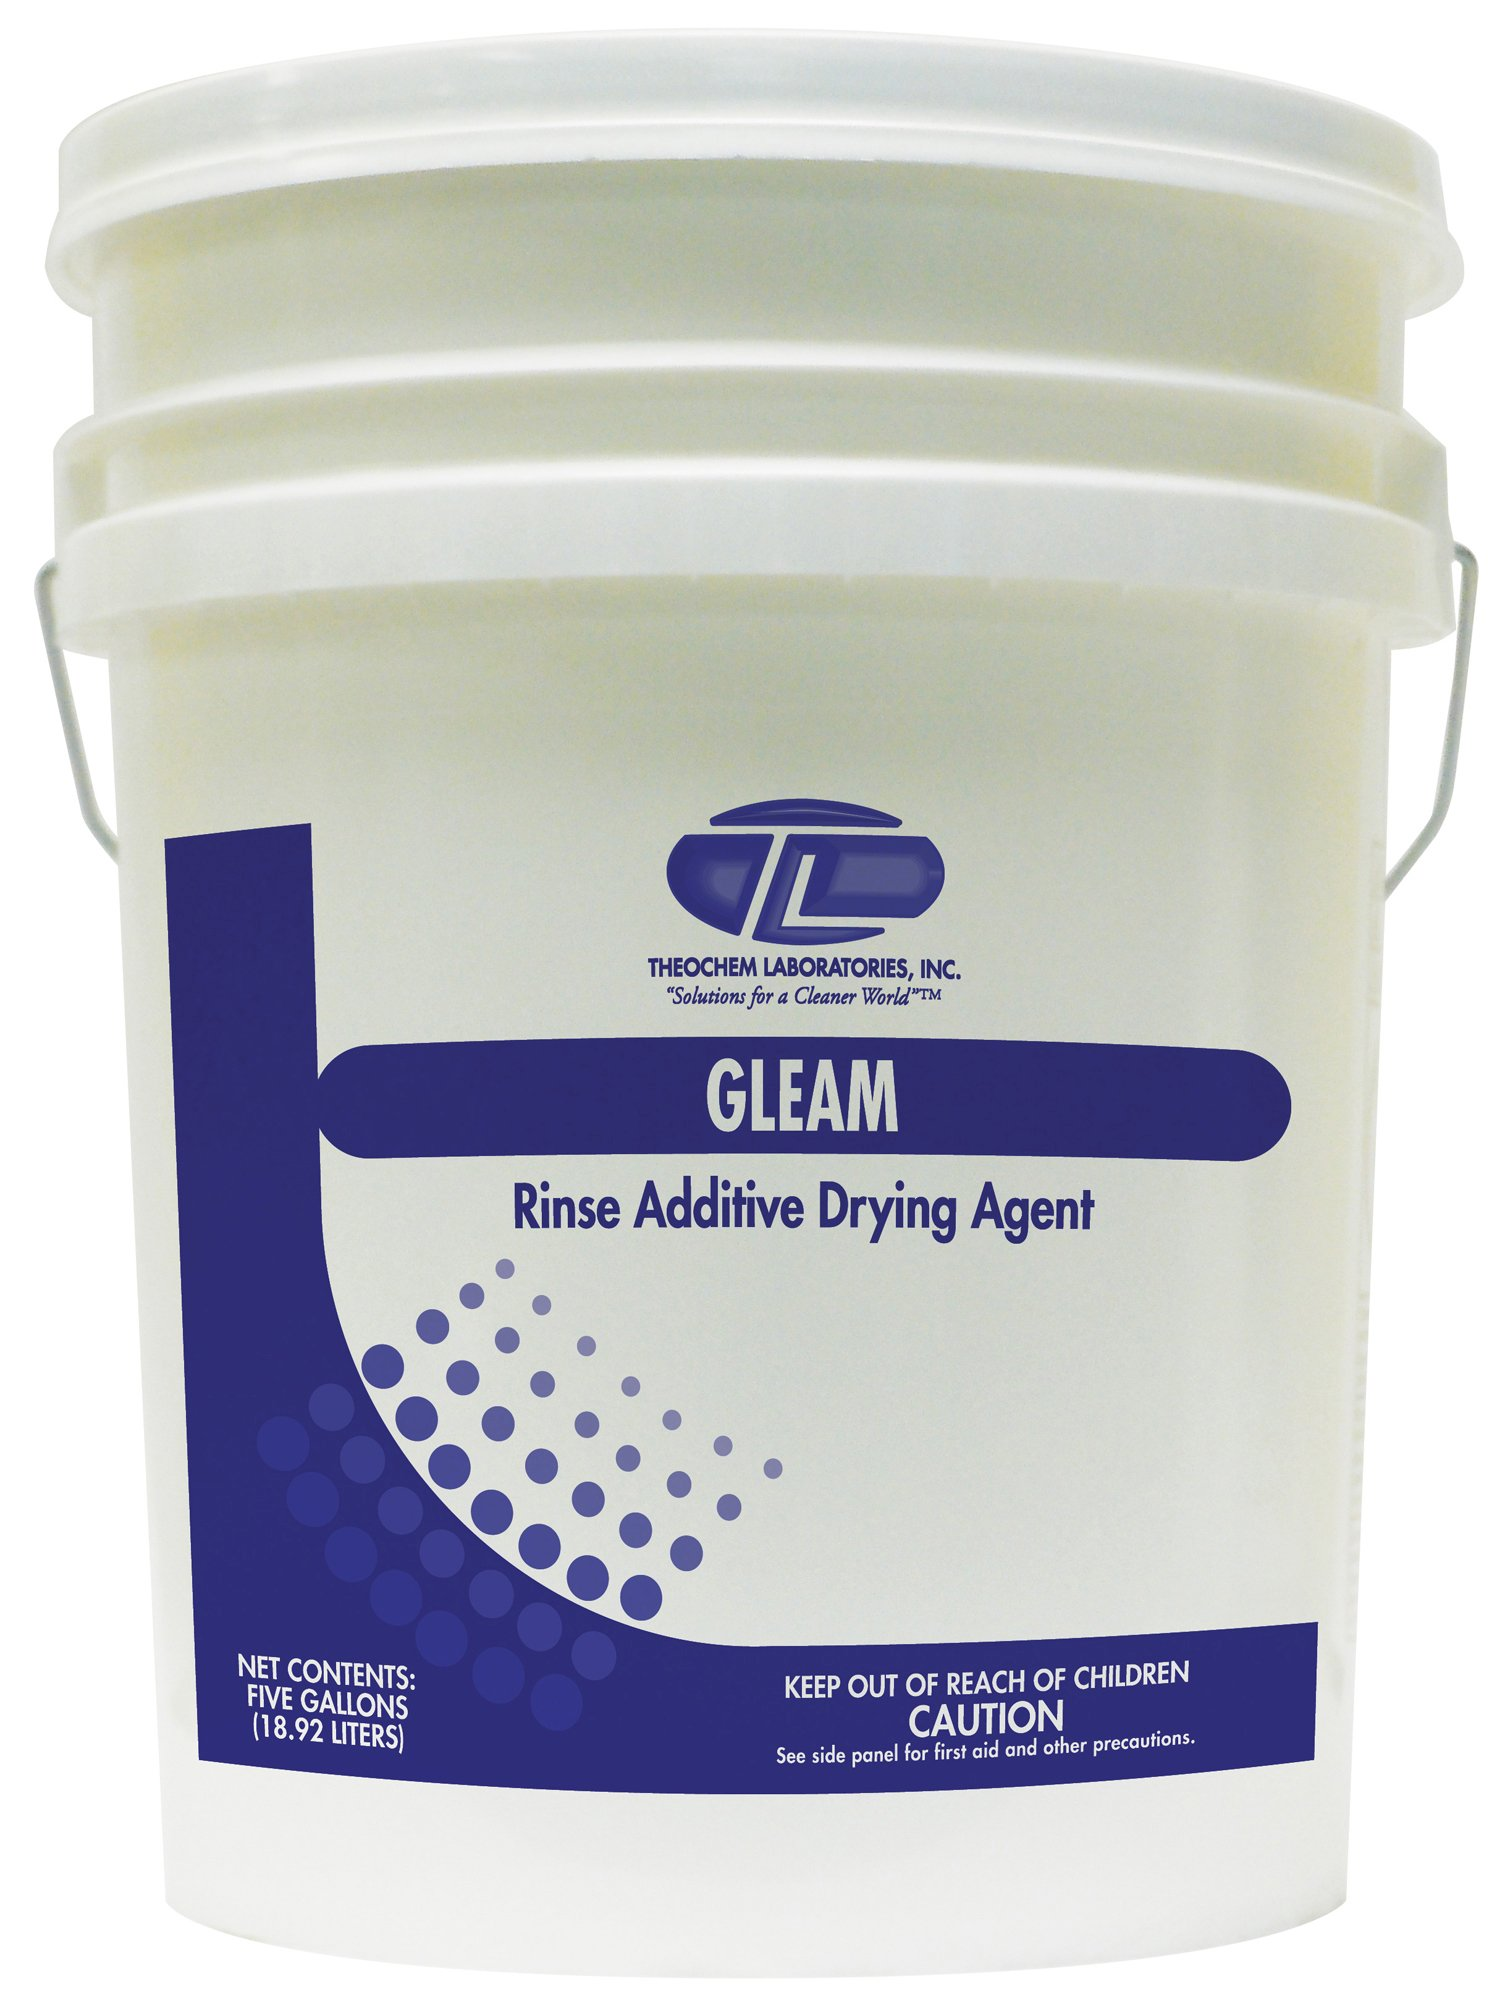 THEOCHEM LABORATORIES GIDDS-556155 Non-Acid Crystal Drain Opener And Cleaner, 1 lb